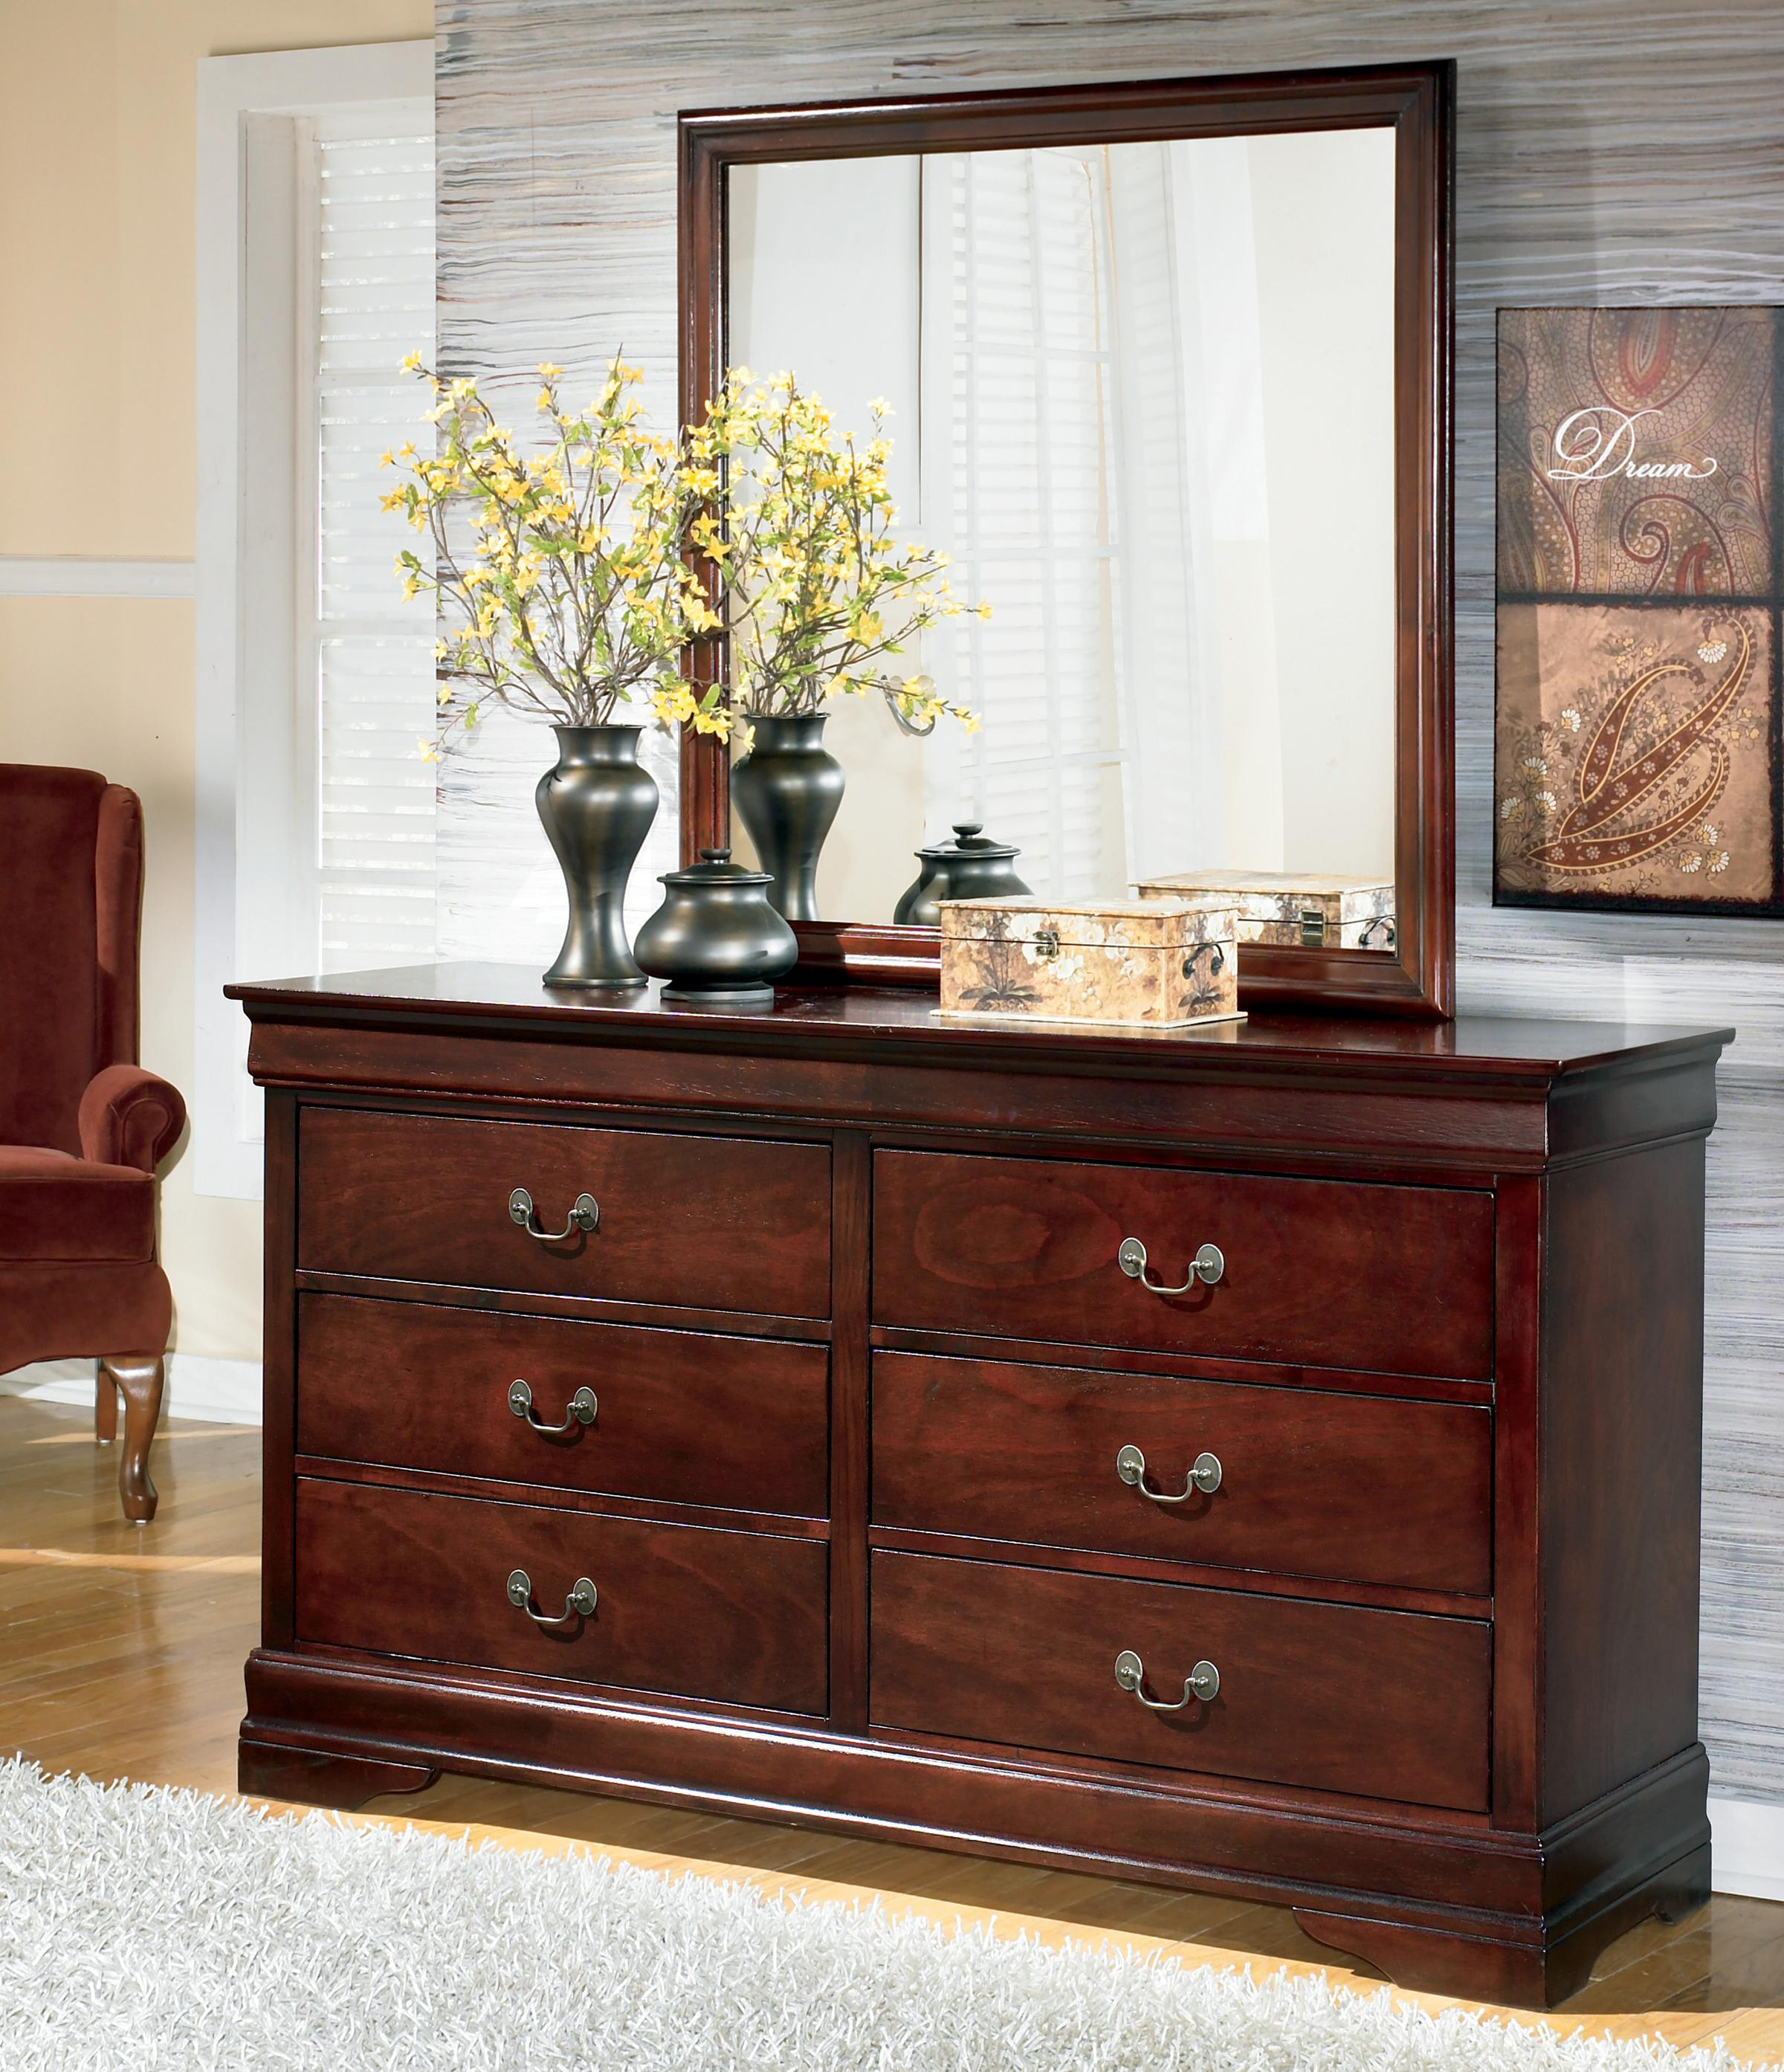 Signature Design by Ashley Alisdair Dresser & Mirror - Item Number: B376-31+36